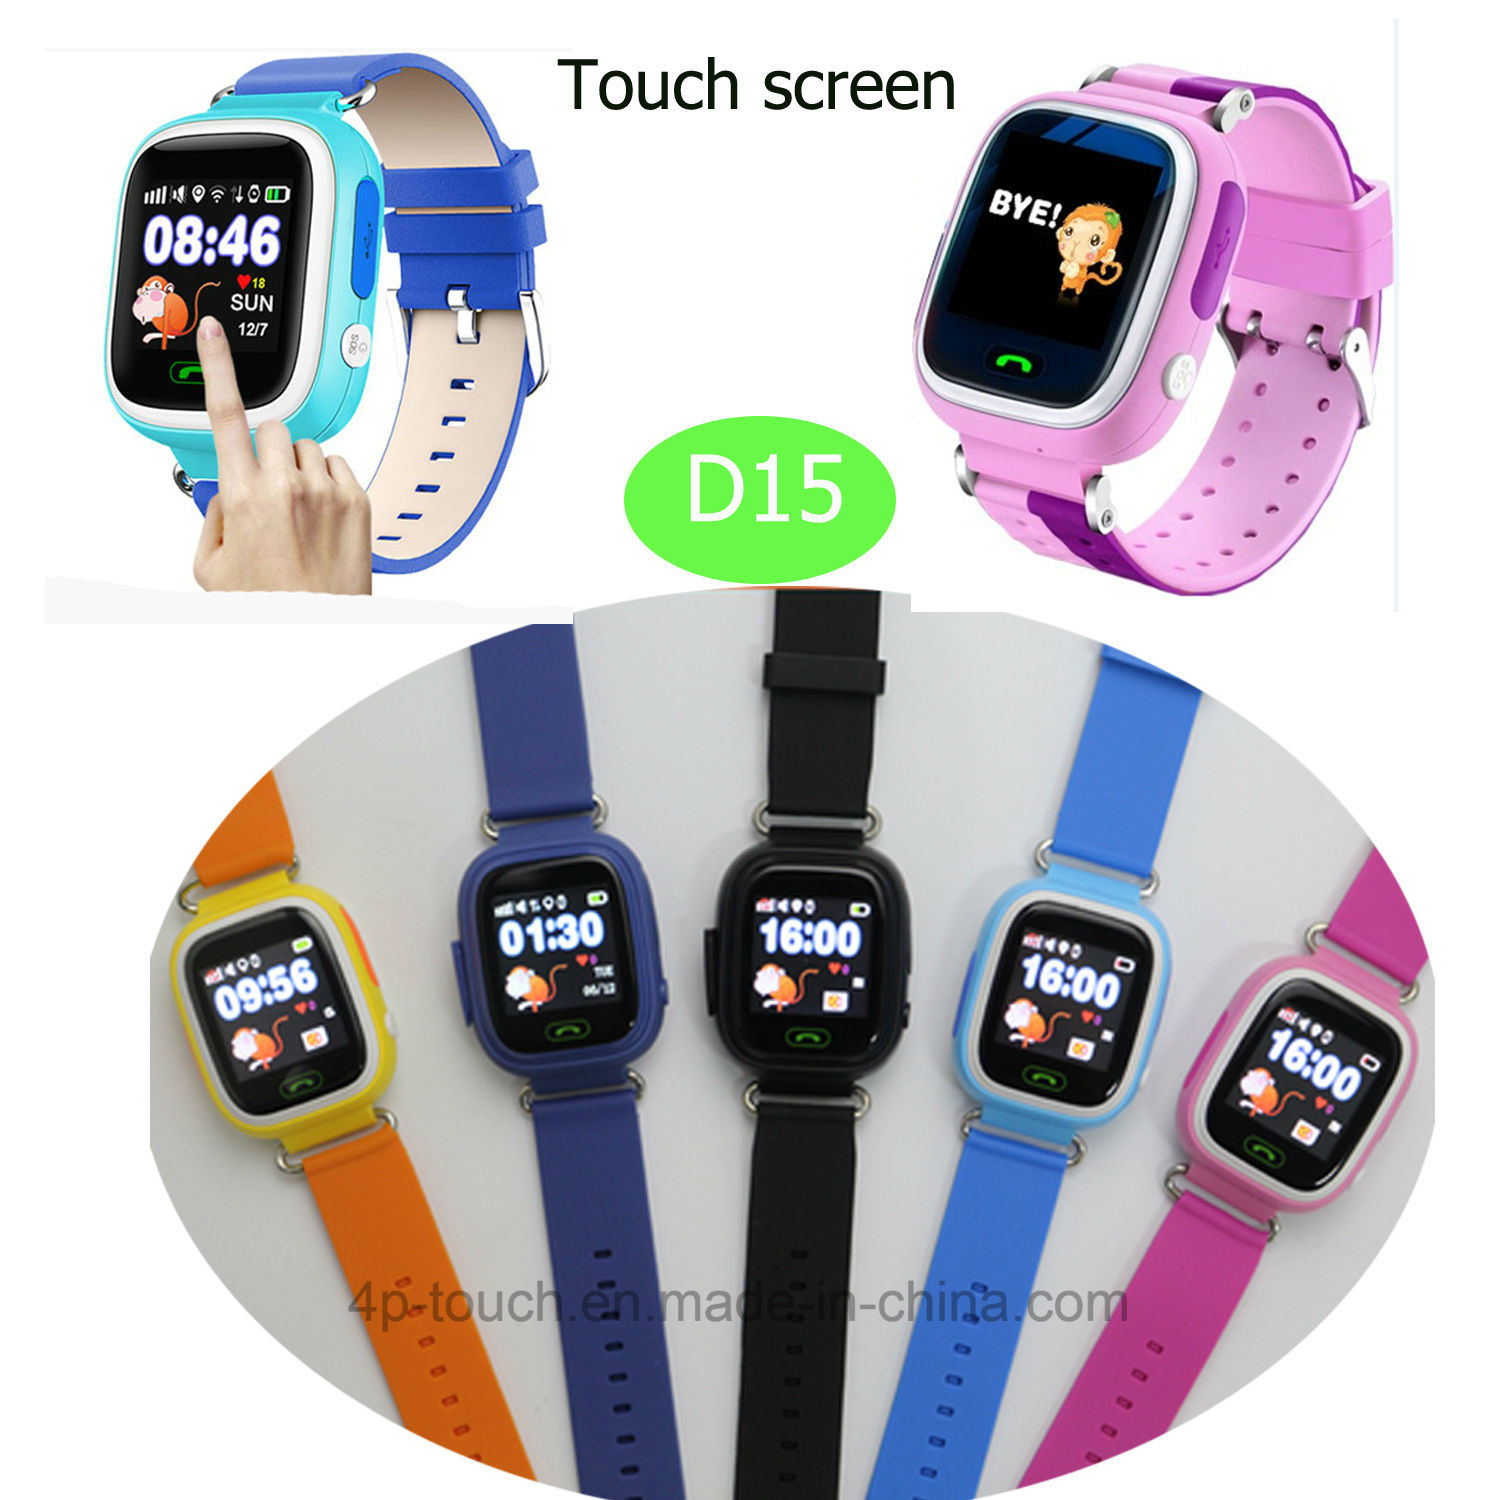 Colorful Touch Screen Kids/Child GPS Tracker Watch with Real-Time Location D15